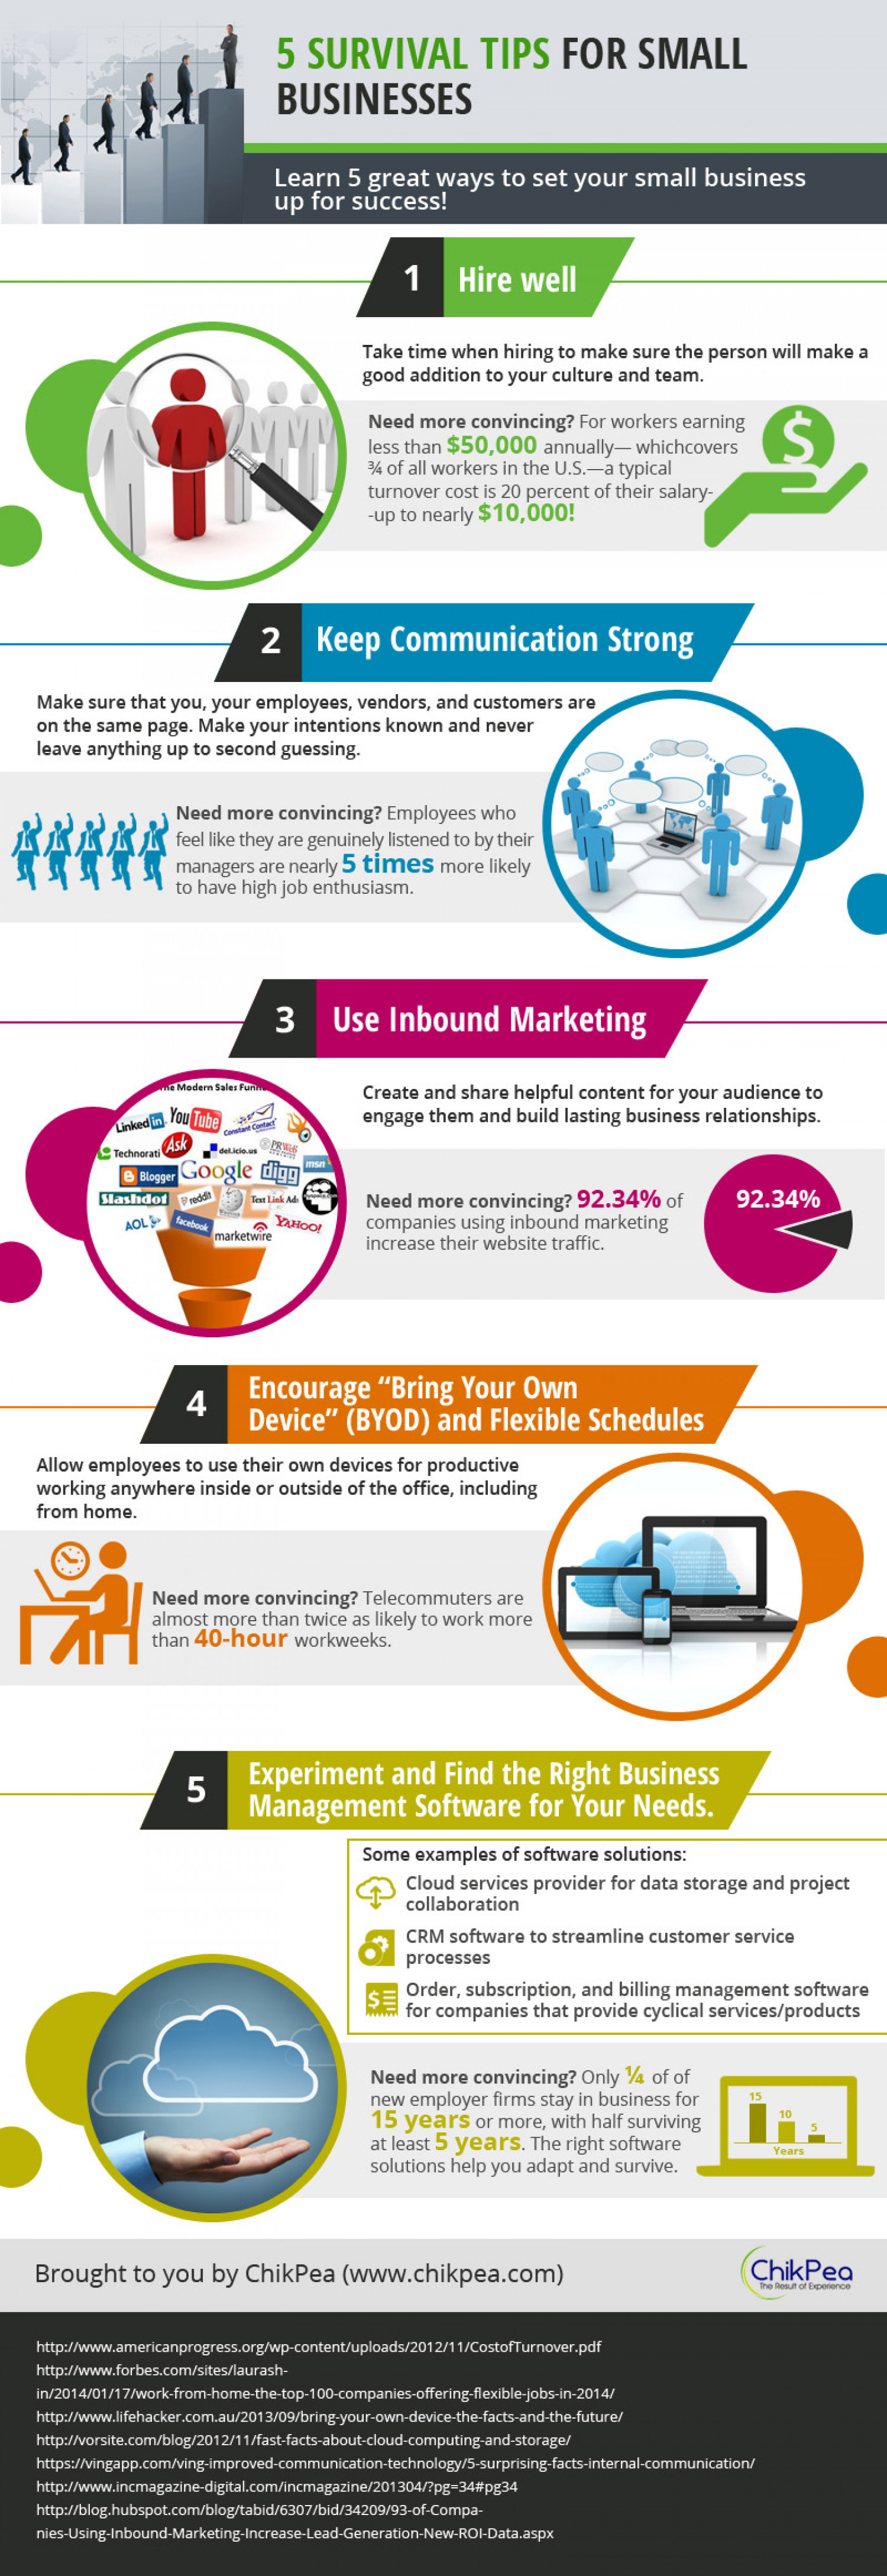 5 Survival Tips For Small Businesses Infographic